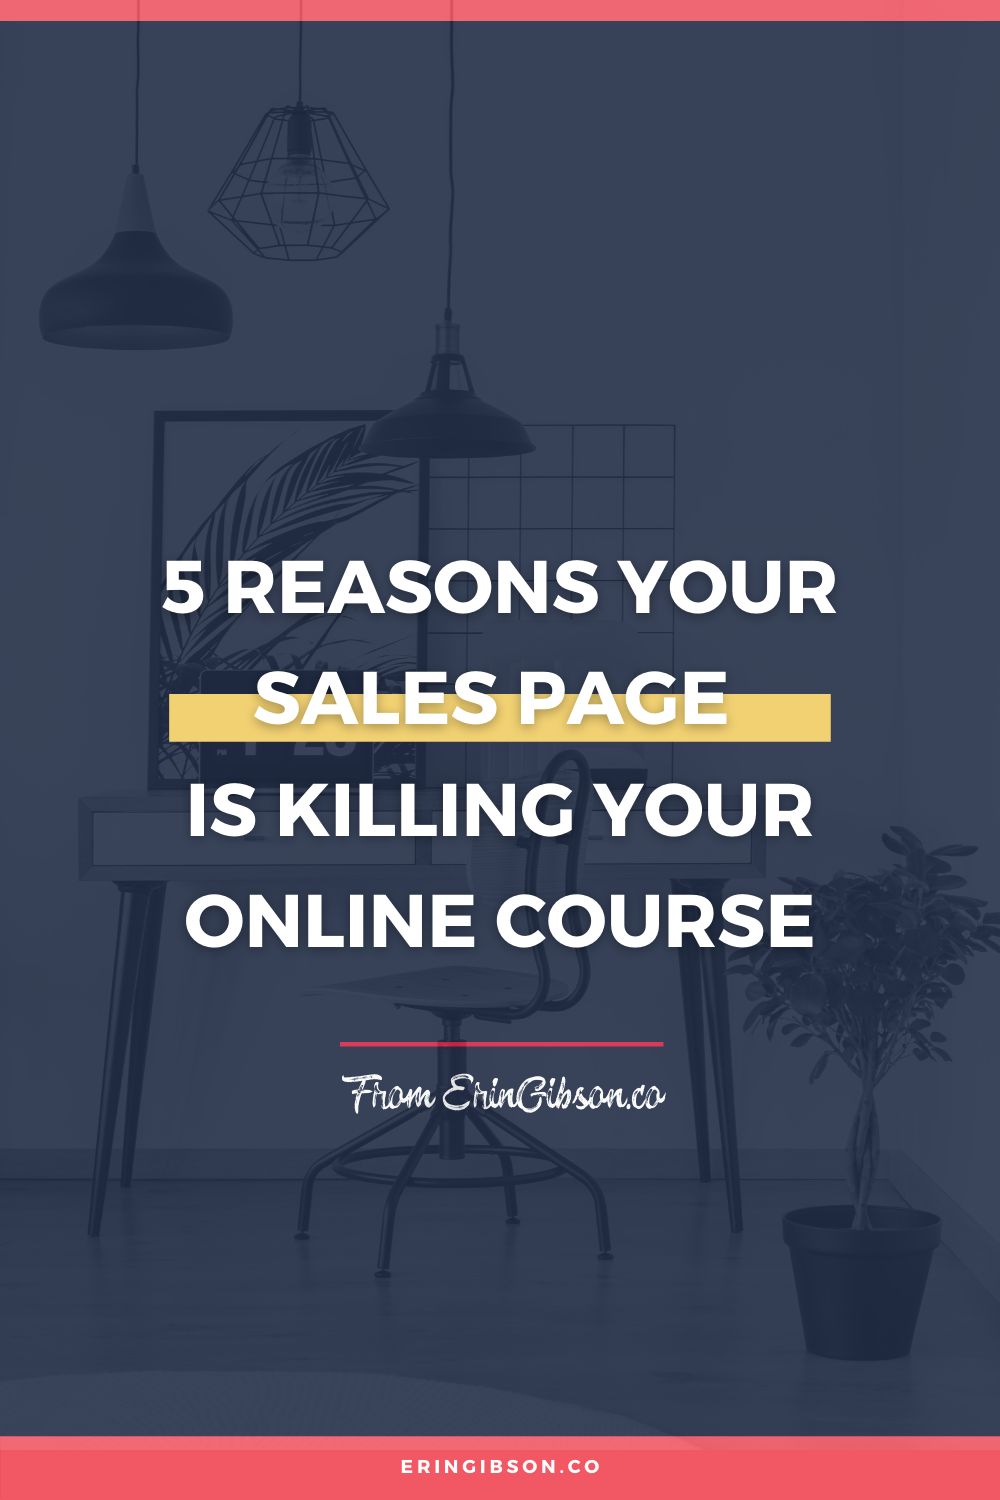 5 reasons your sales page is killing your online course